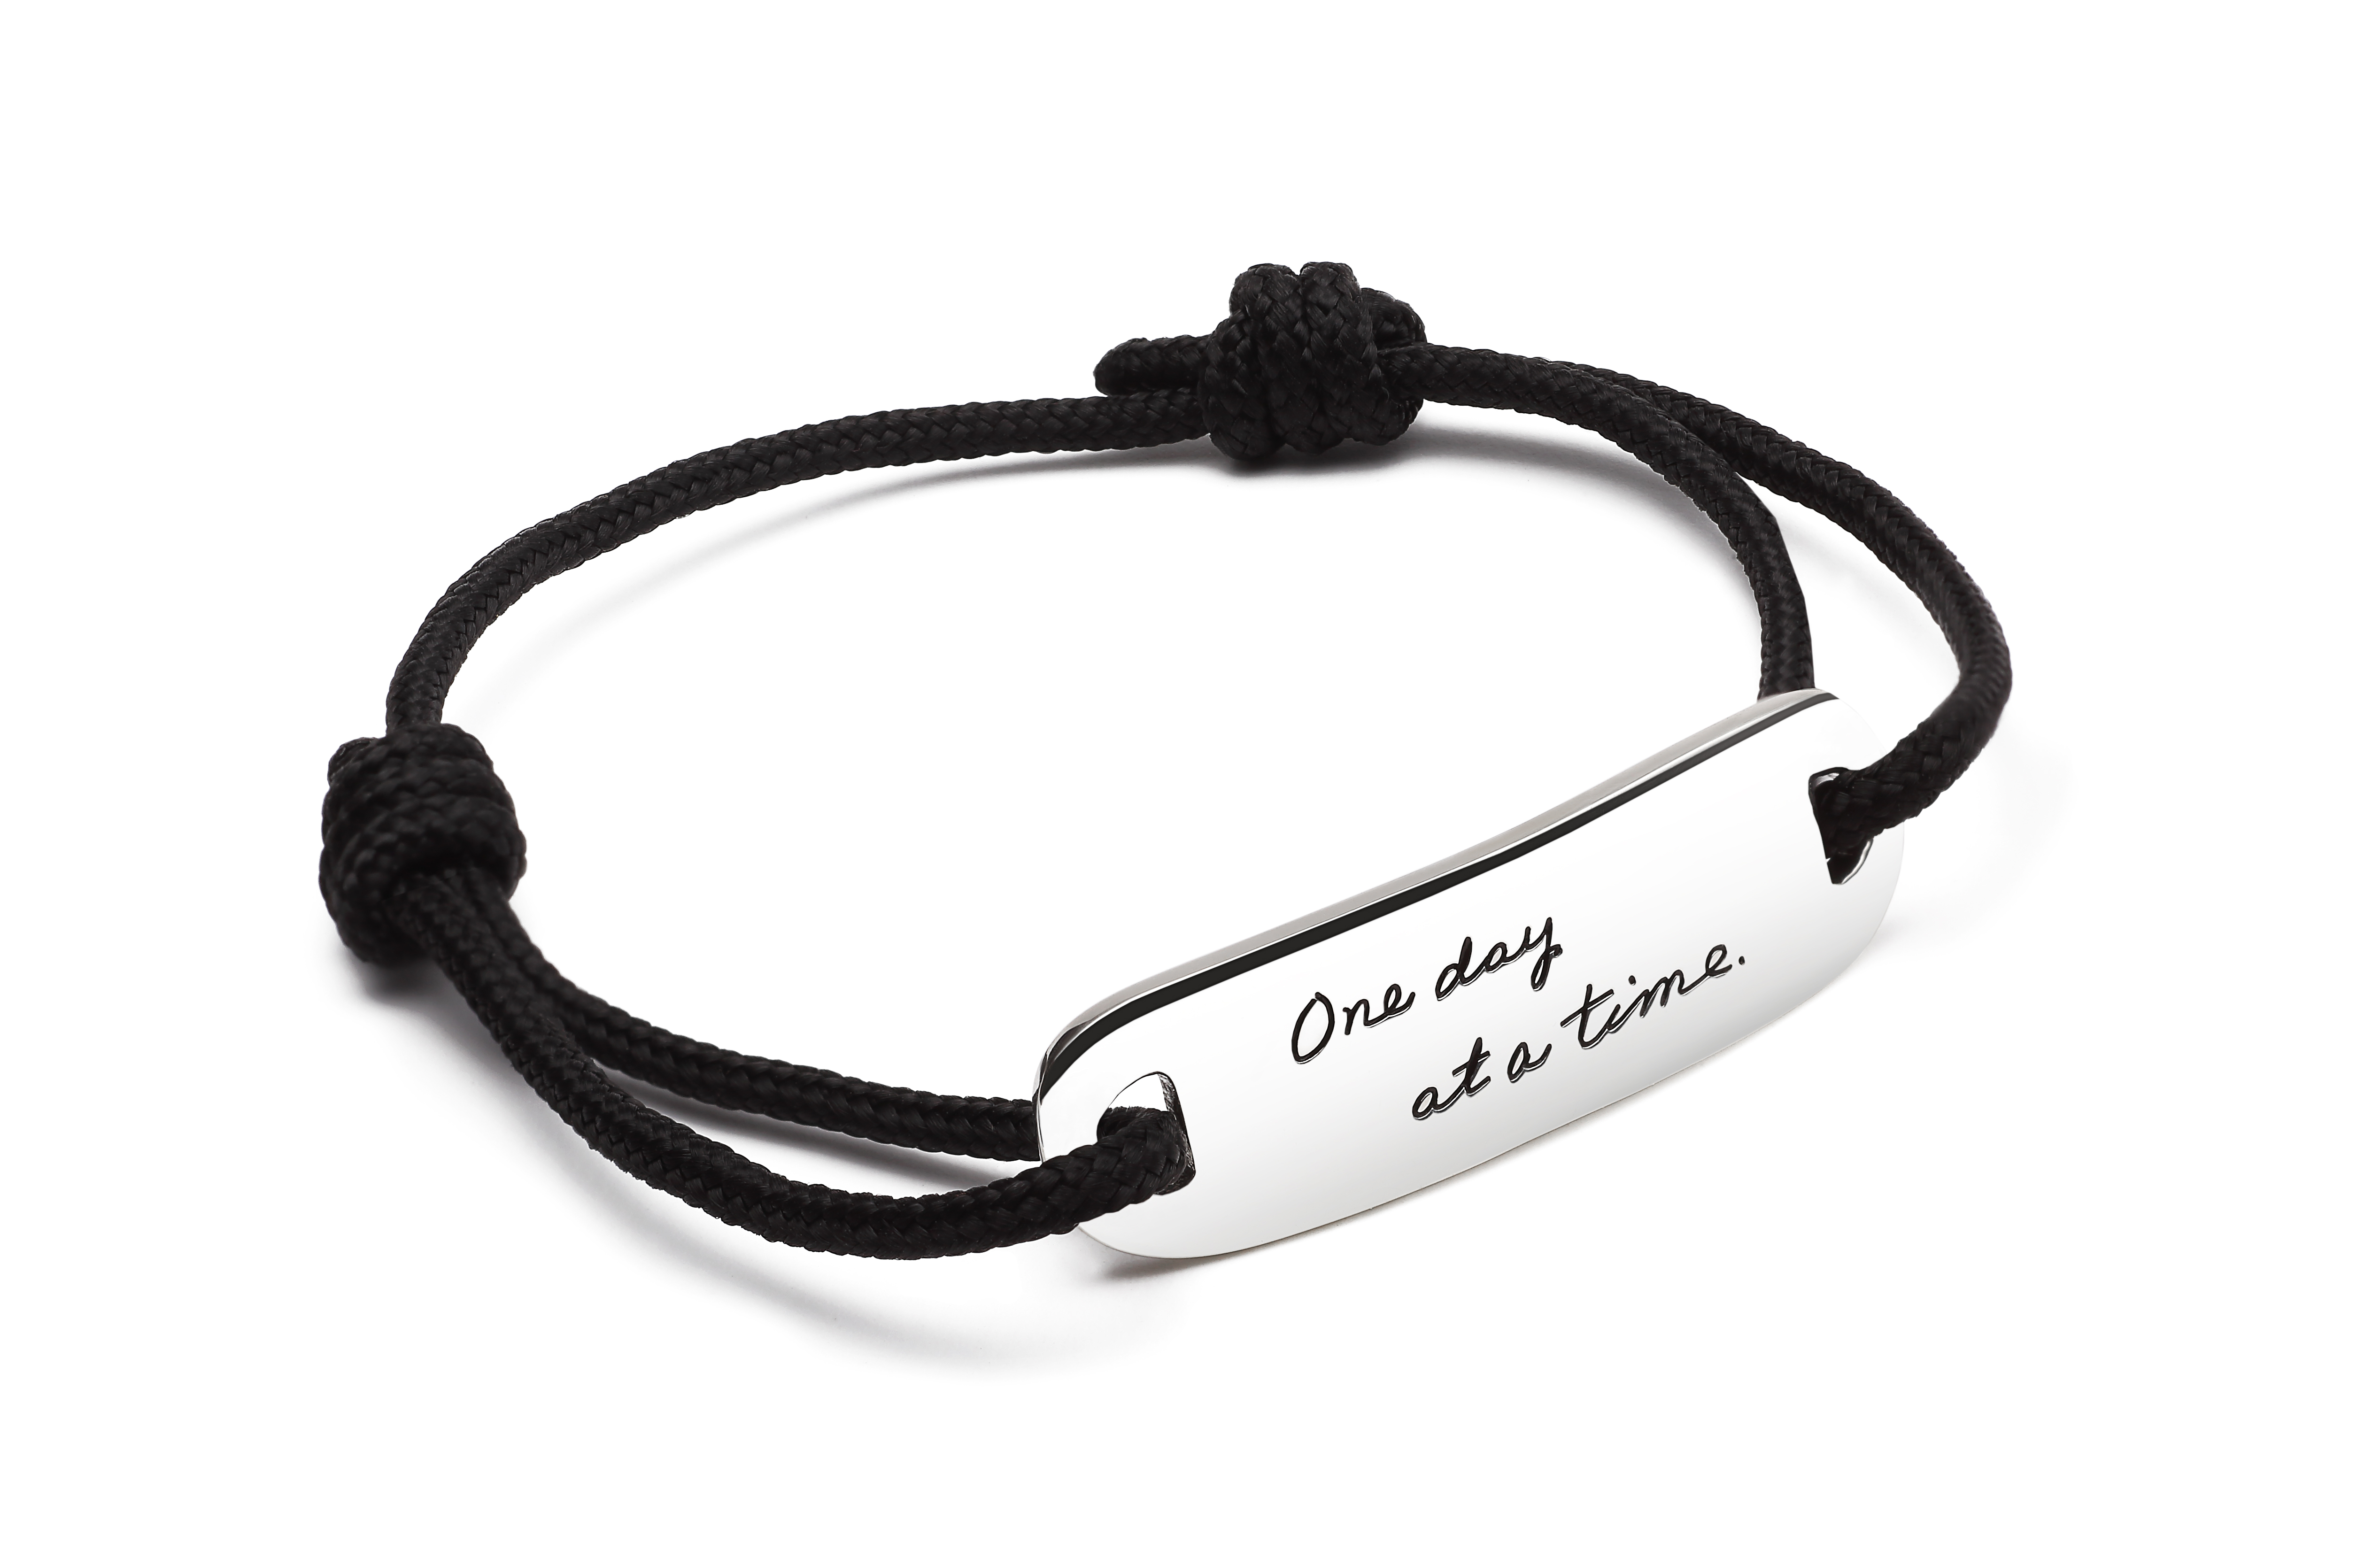 Black corded bracelet with Inspirational Sterling Silver horizonal long oval shape plaque with two half circle cutout on either end to attach cord quote reads: One day at a time.